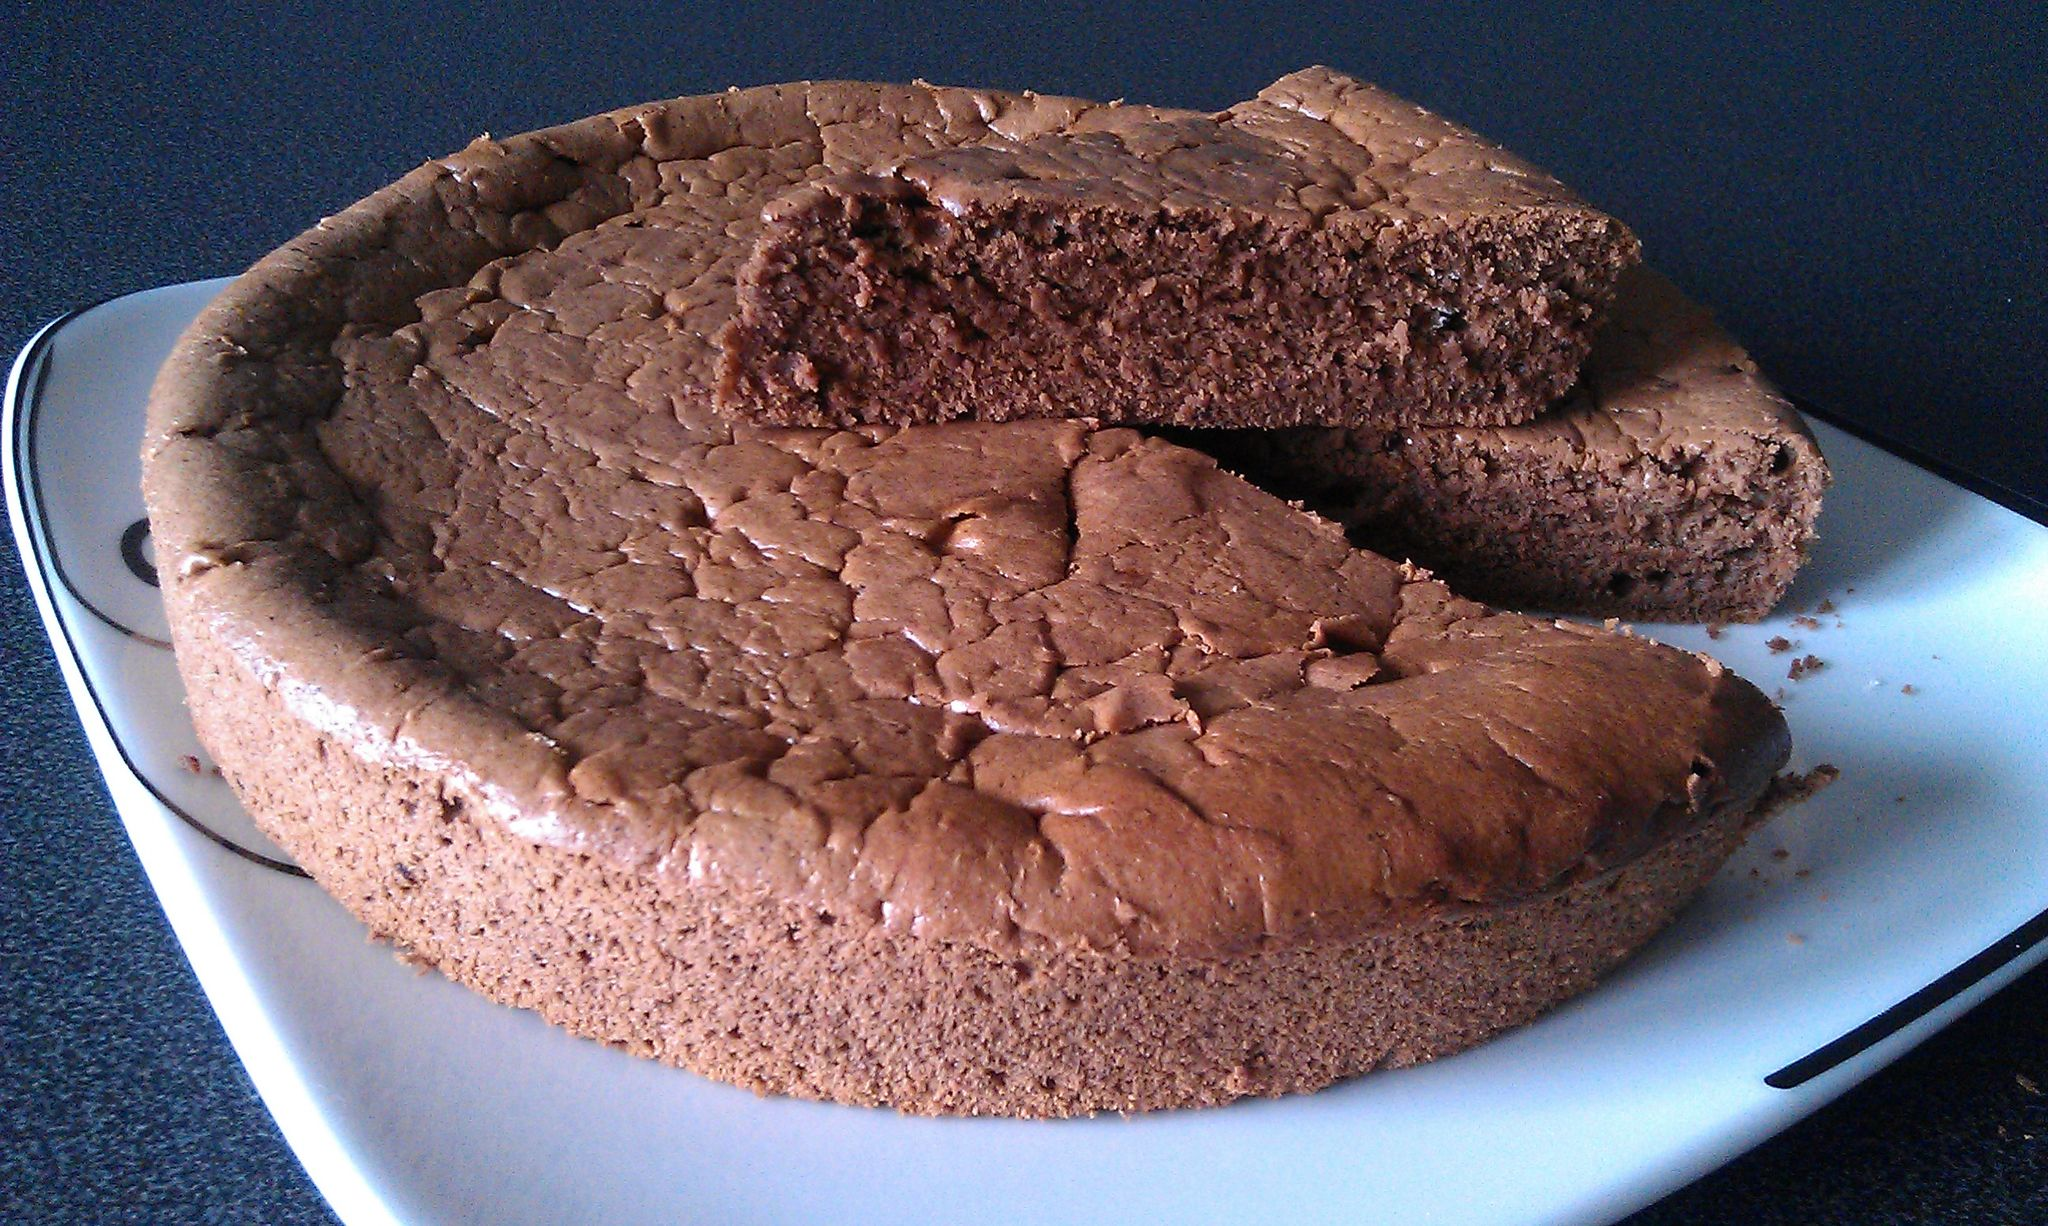 Gateaux au chocolat weight watchers